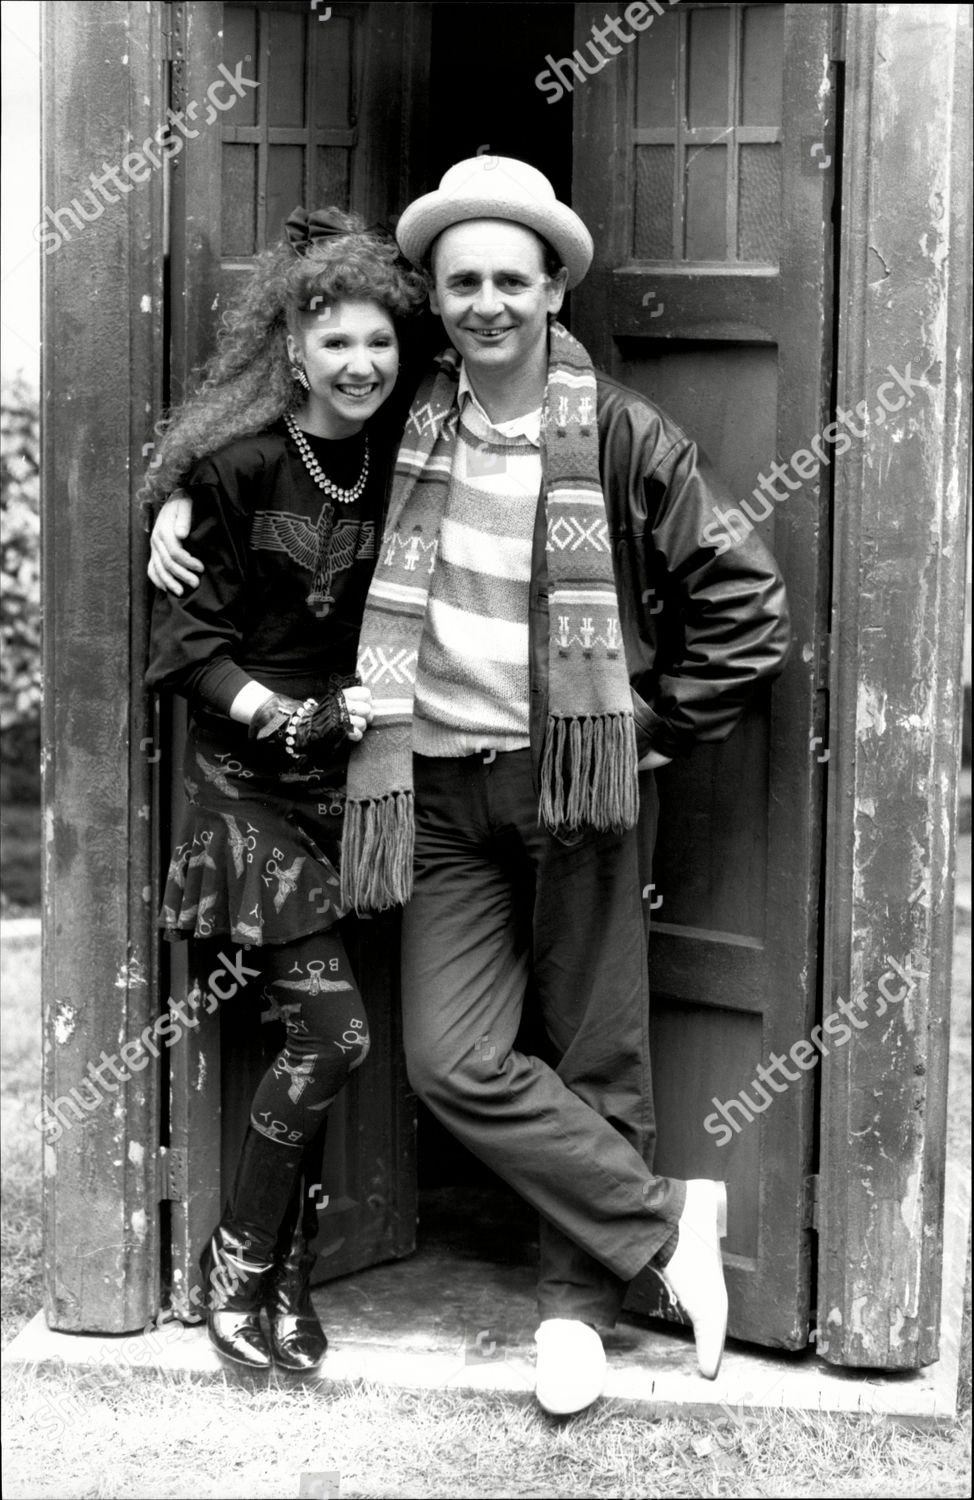 the-new-dr-who-shakespearean-actor-sylvester-mccoy-with-bonnie-langford-aboard-the-tardis-in-london-he-is-the-7th-dr-who-shutterstock-editorial-1446077ab.jpg